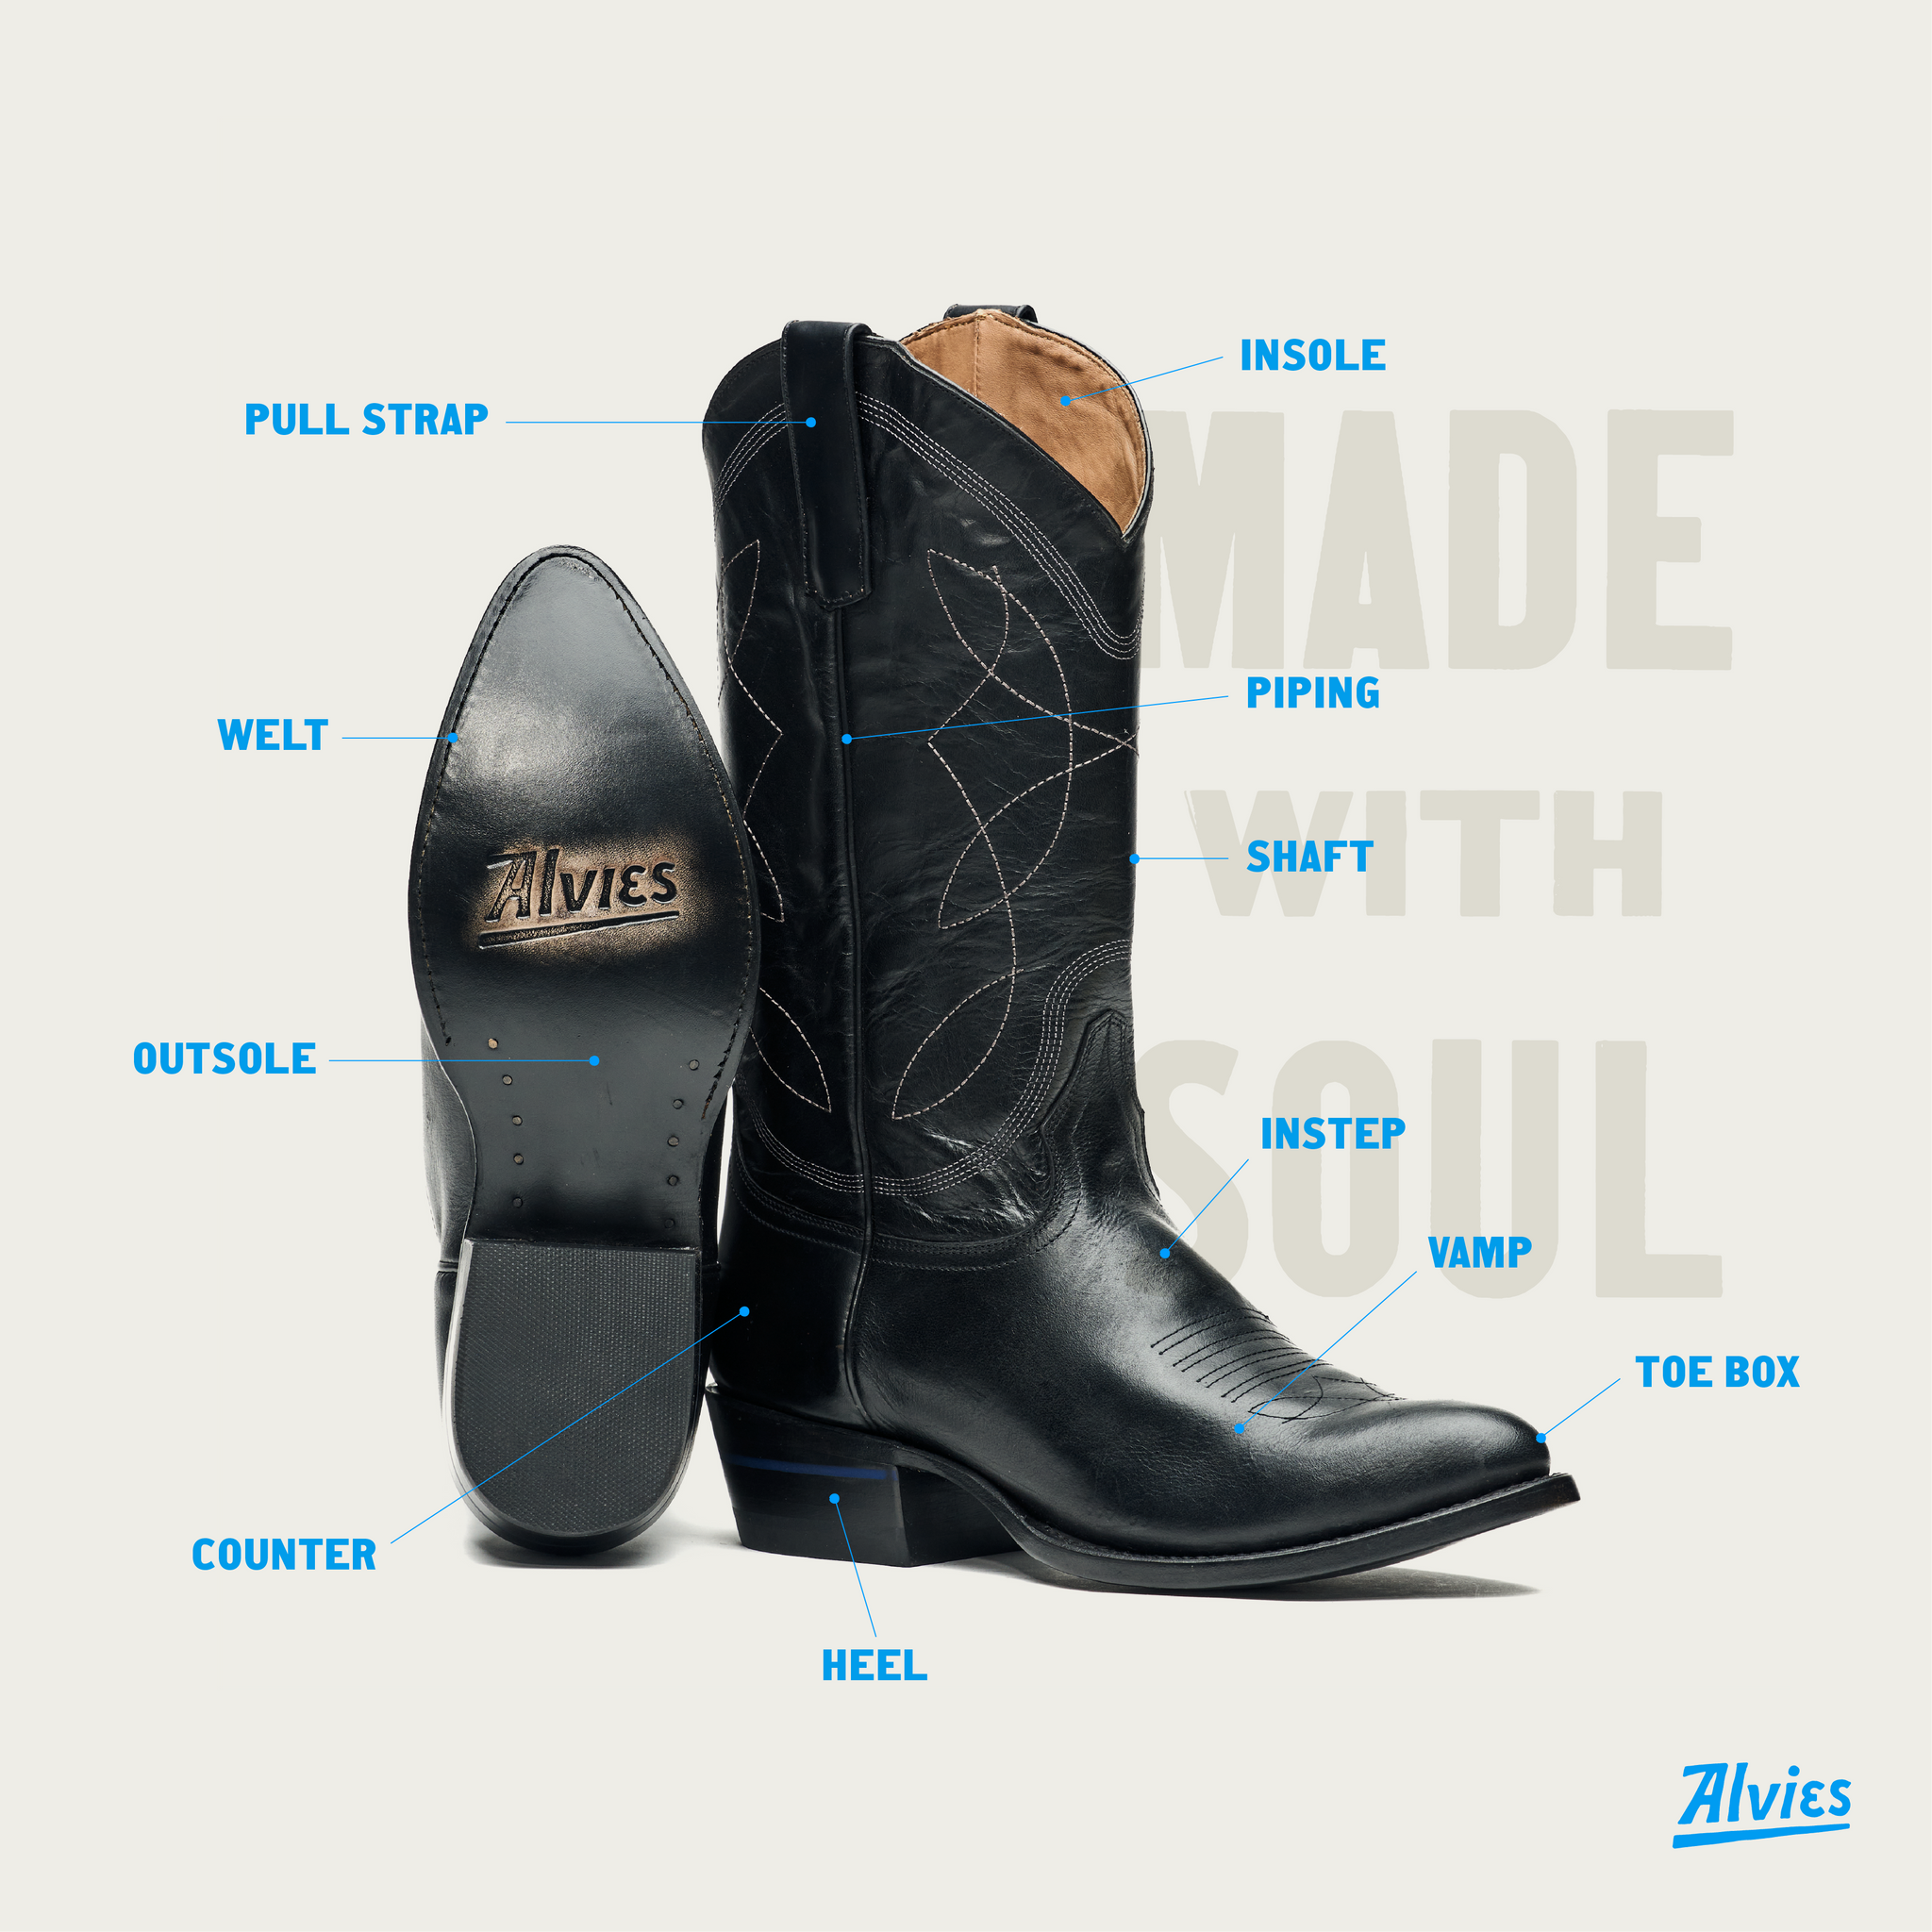 From heel to toe: the anatomy of a cowboy boot